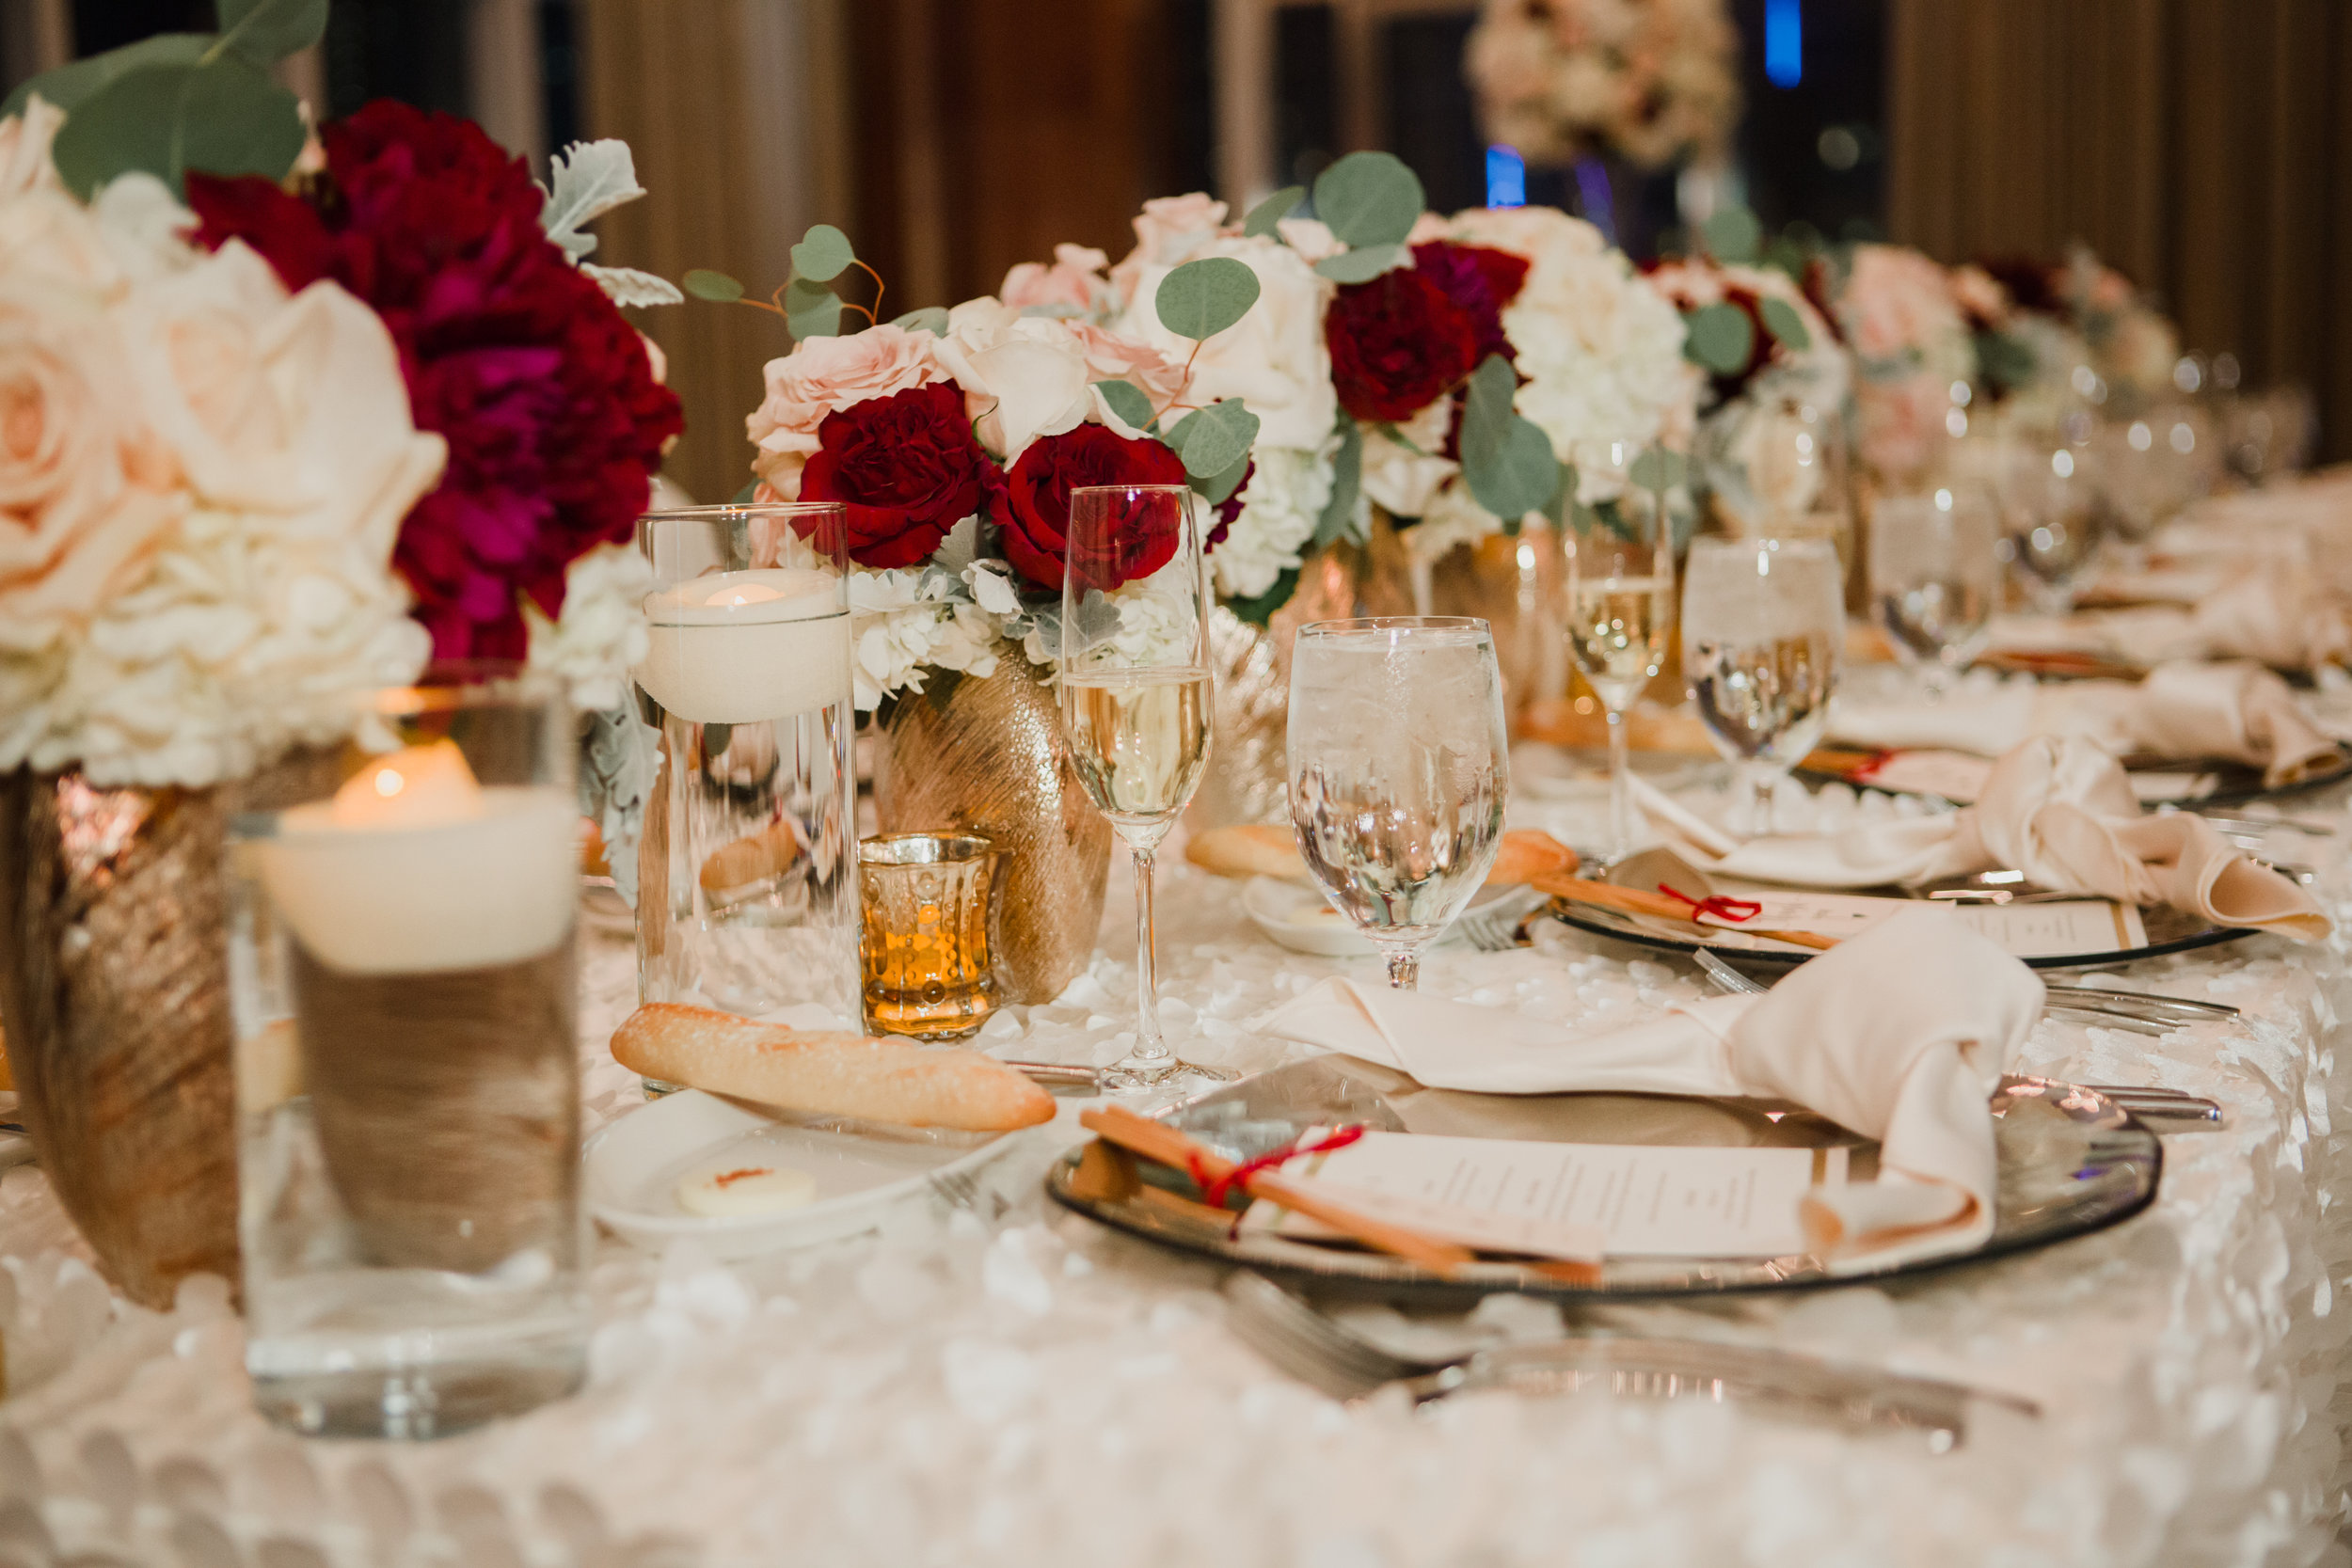 Long, low wedding centerpieces in red and rose.Luxury wedding at the Mandarin Oriental with a color scheme of white, blush, and pops of wine red produced by Las Vegas Wedding Planner Andrea Eppolito with photos by Stephen Salazar Photography.